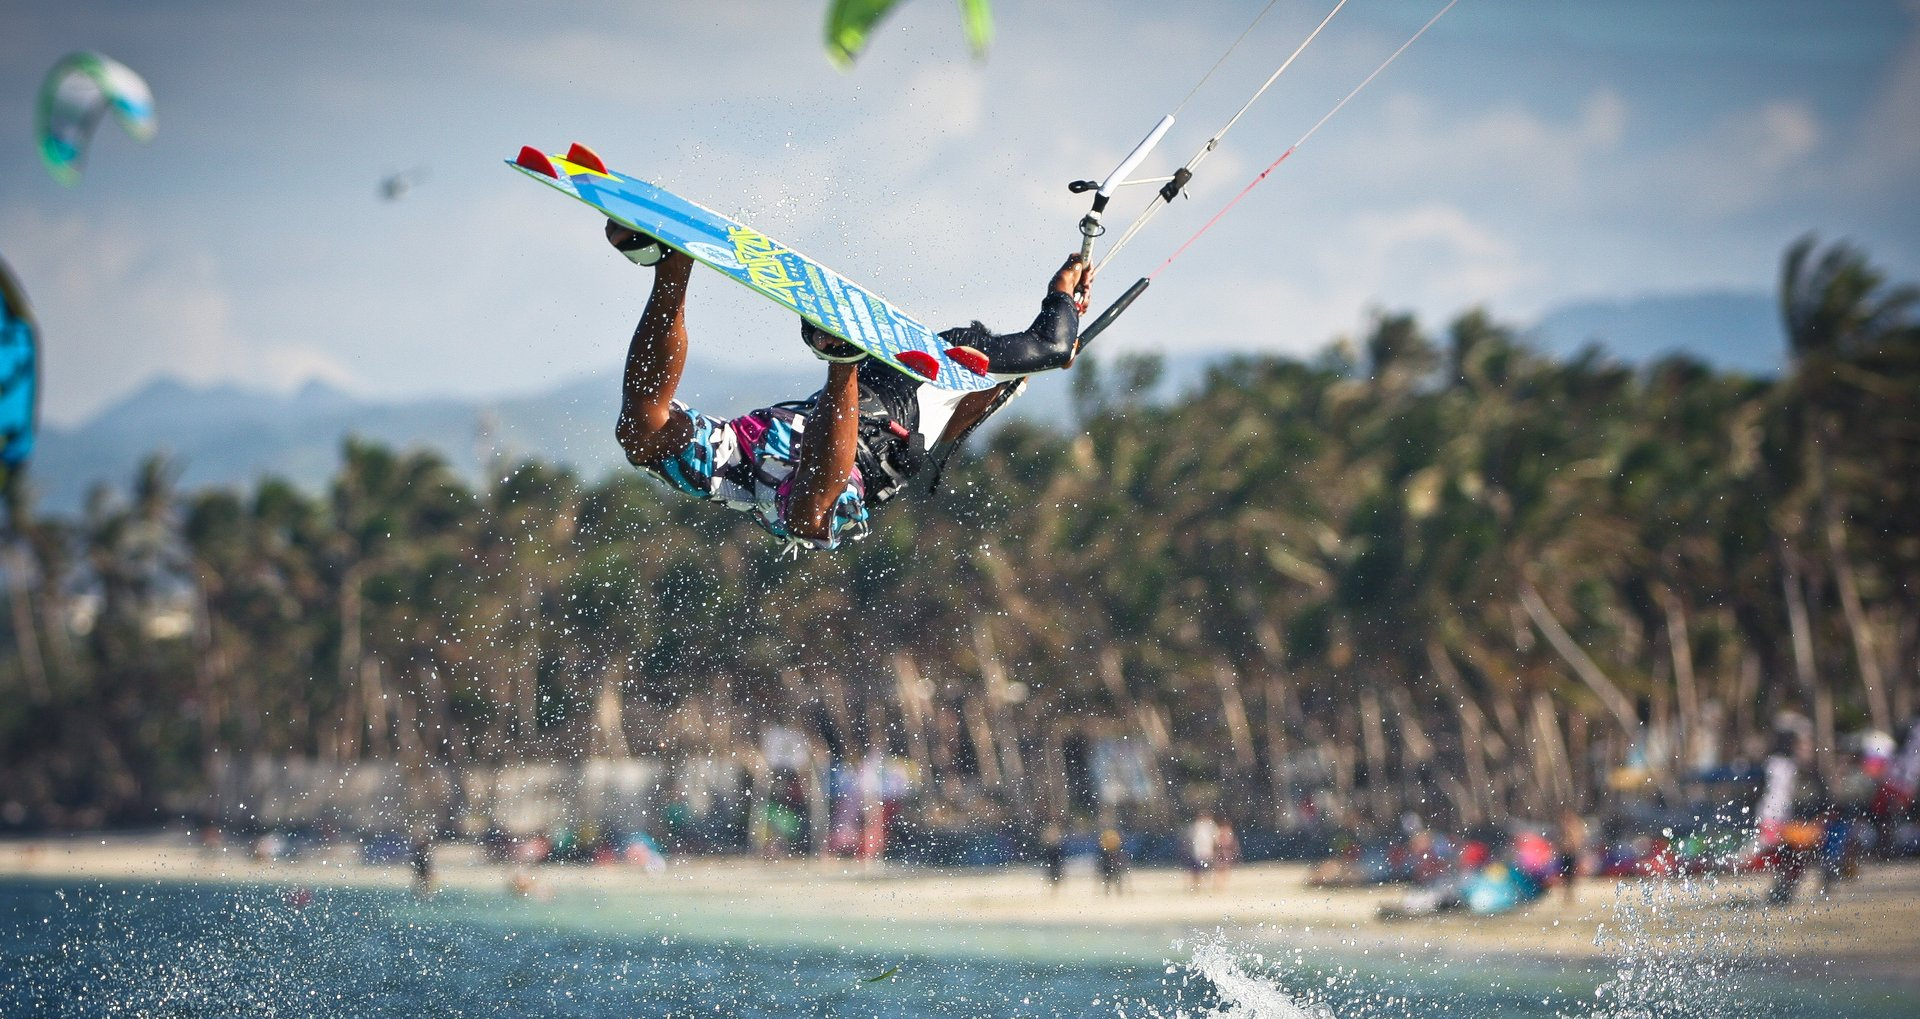 Kitesurfing on Boracay in Philippines 2020 - Best Time